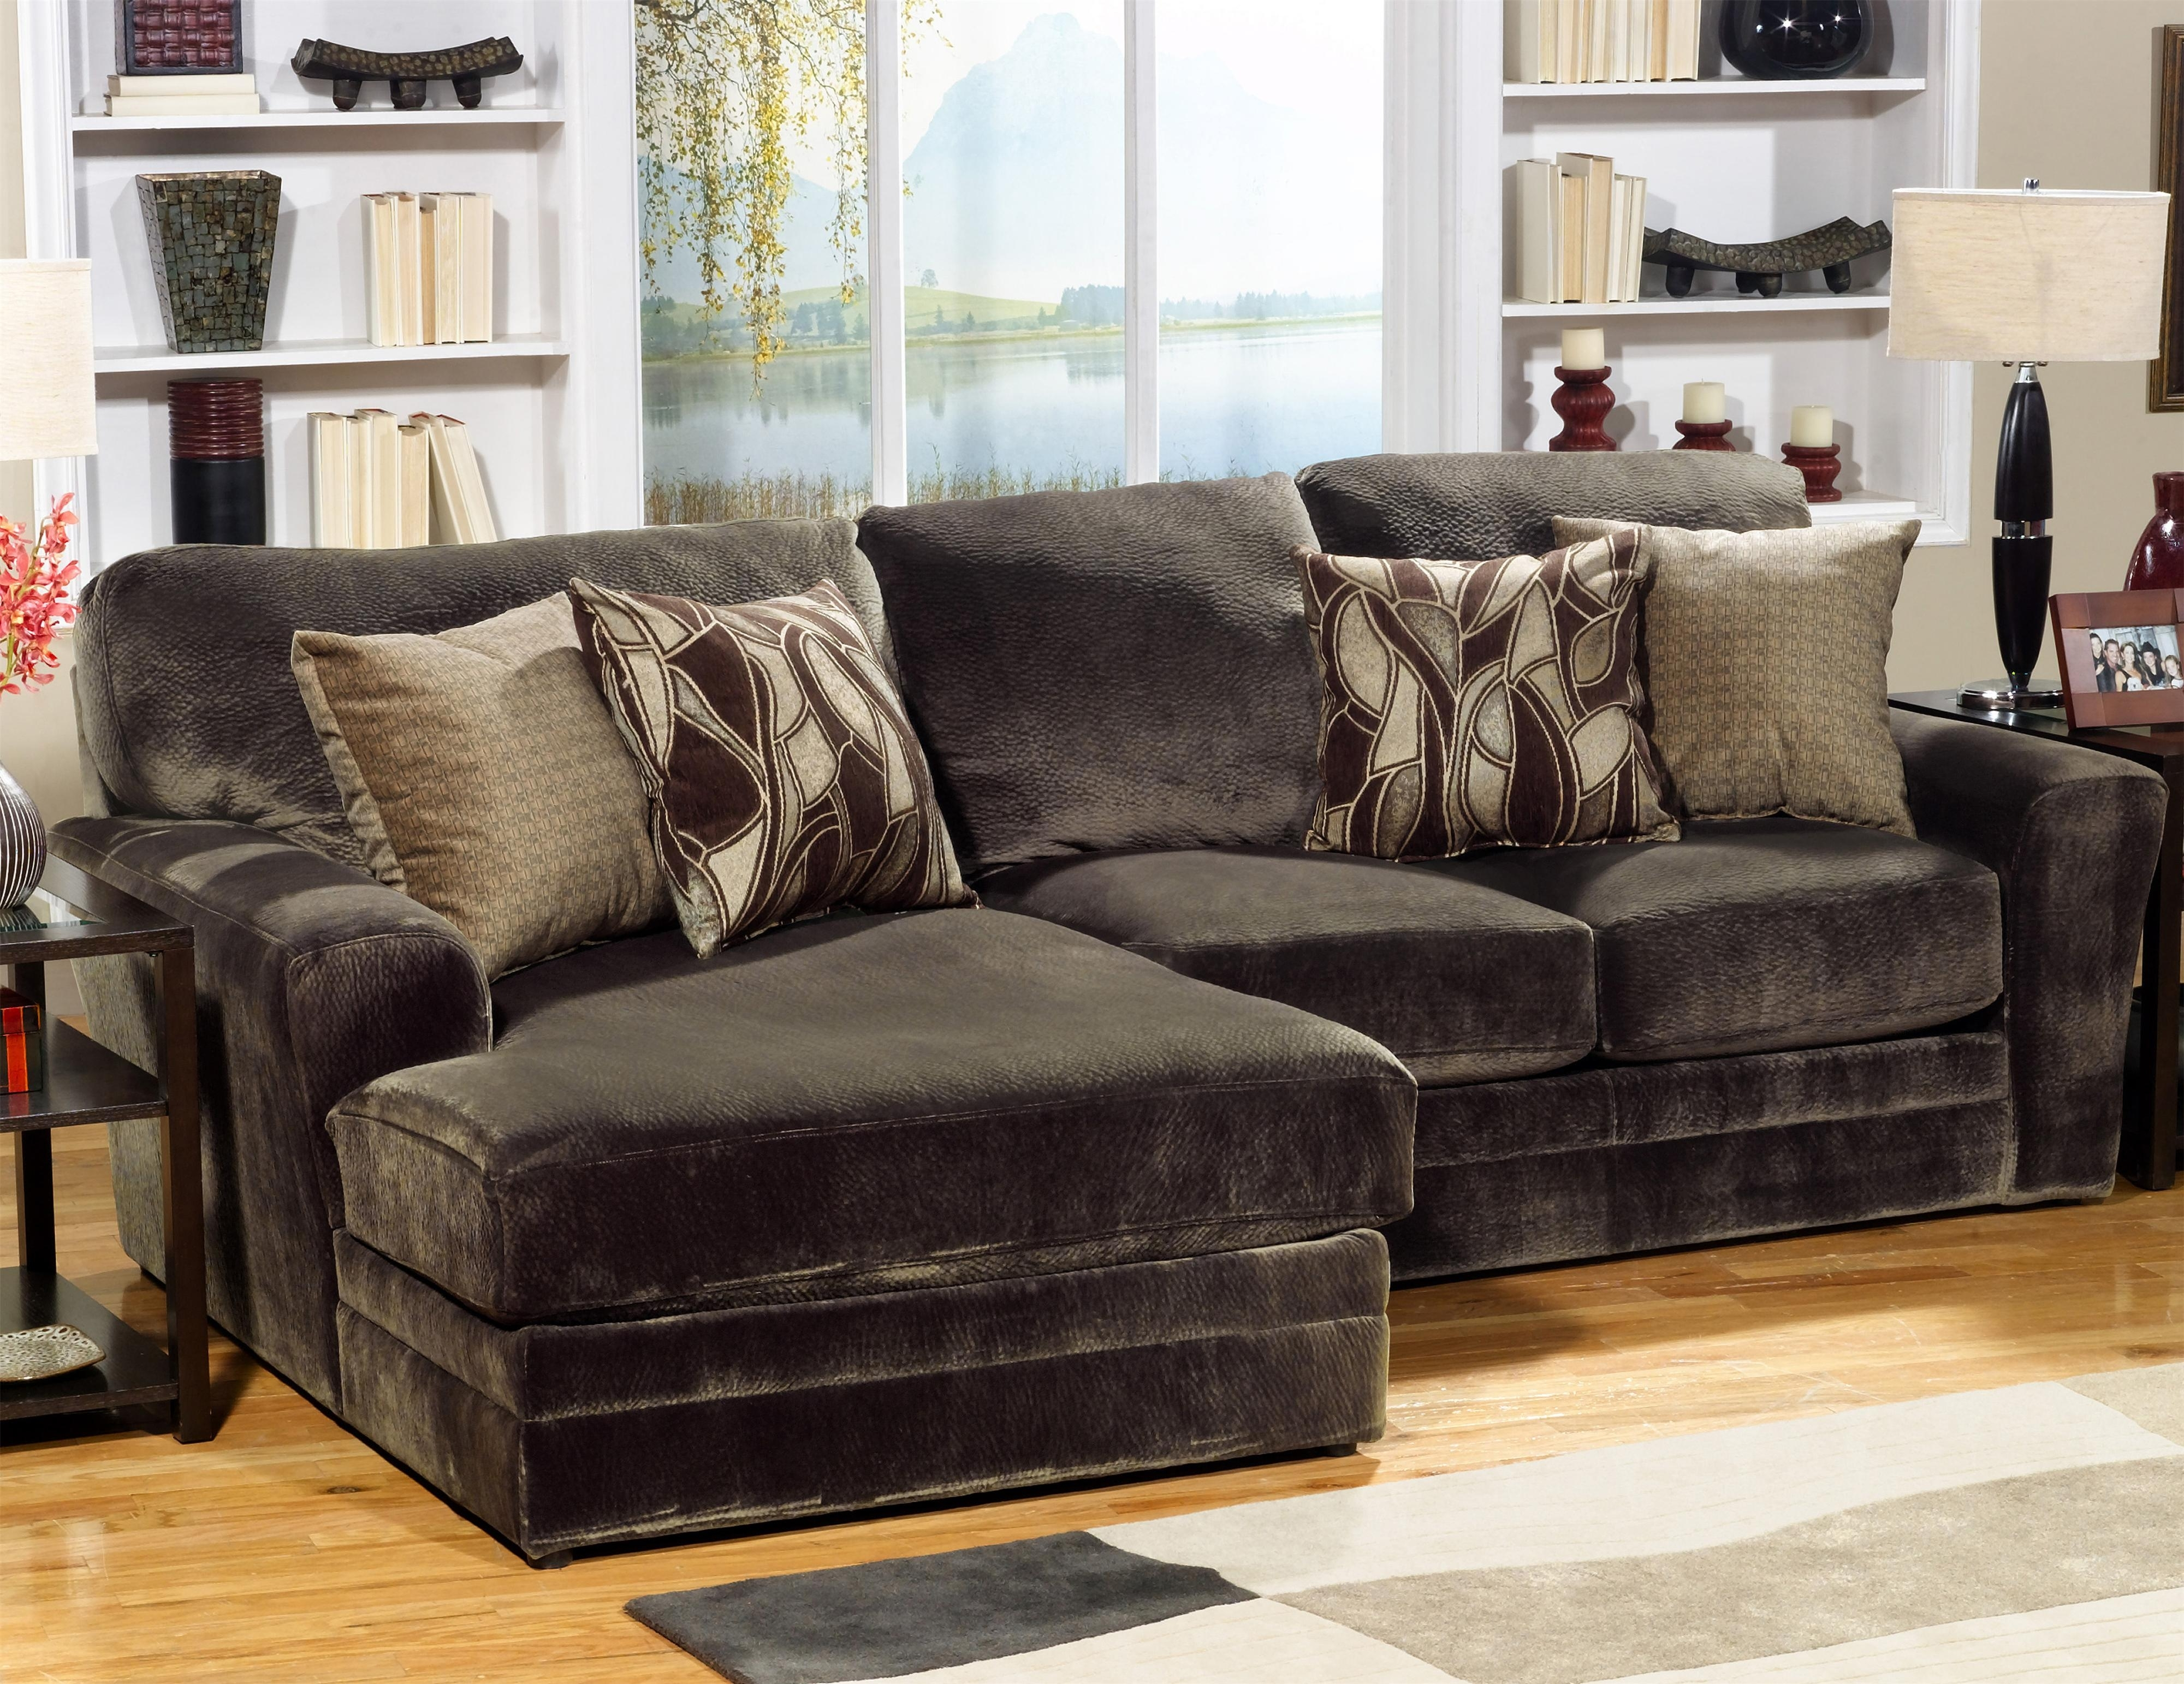 Jackson Furniture 4377 Everest 2 Piece Sectional Sofa With Lsf with Burton Leather 3 Piece Sectionals (Image 10 of 30)